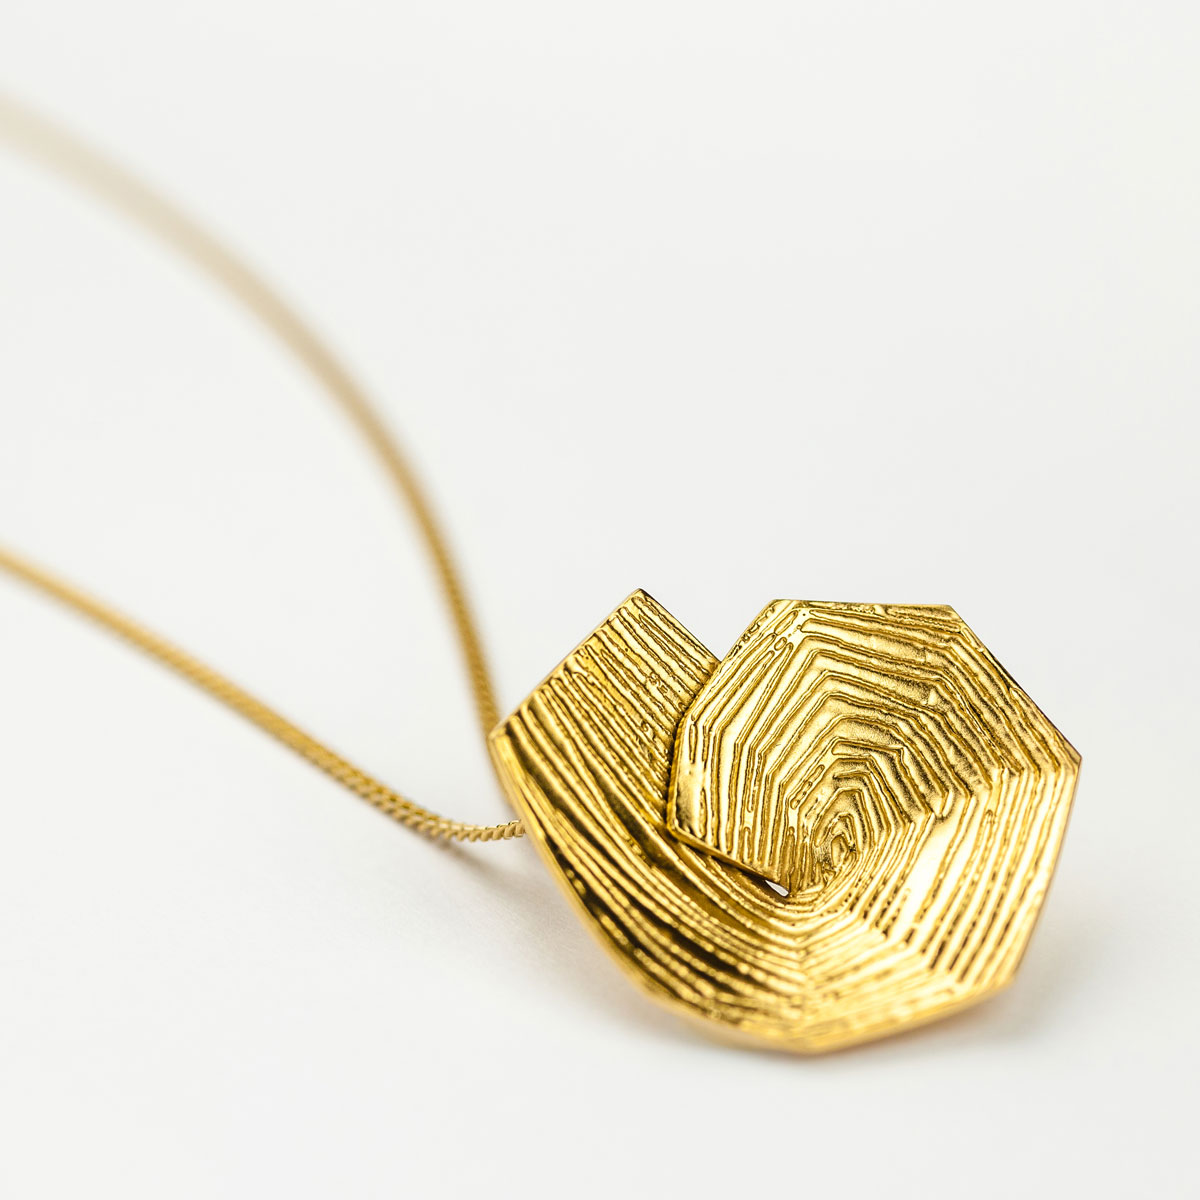 'Lines in Motion' Spiral Gold Pendant